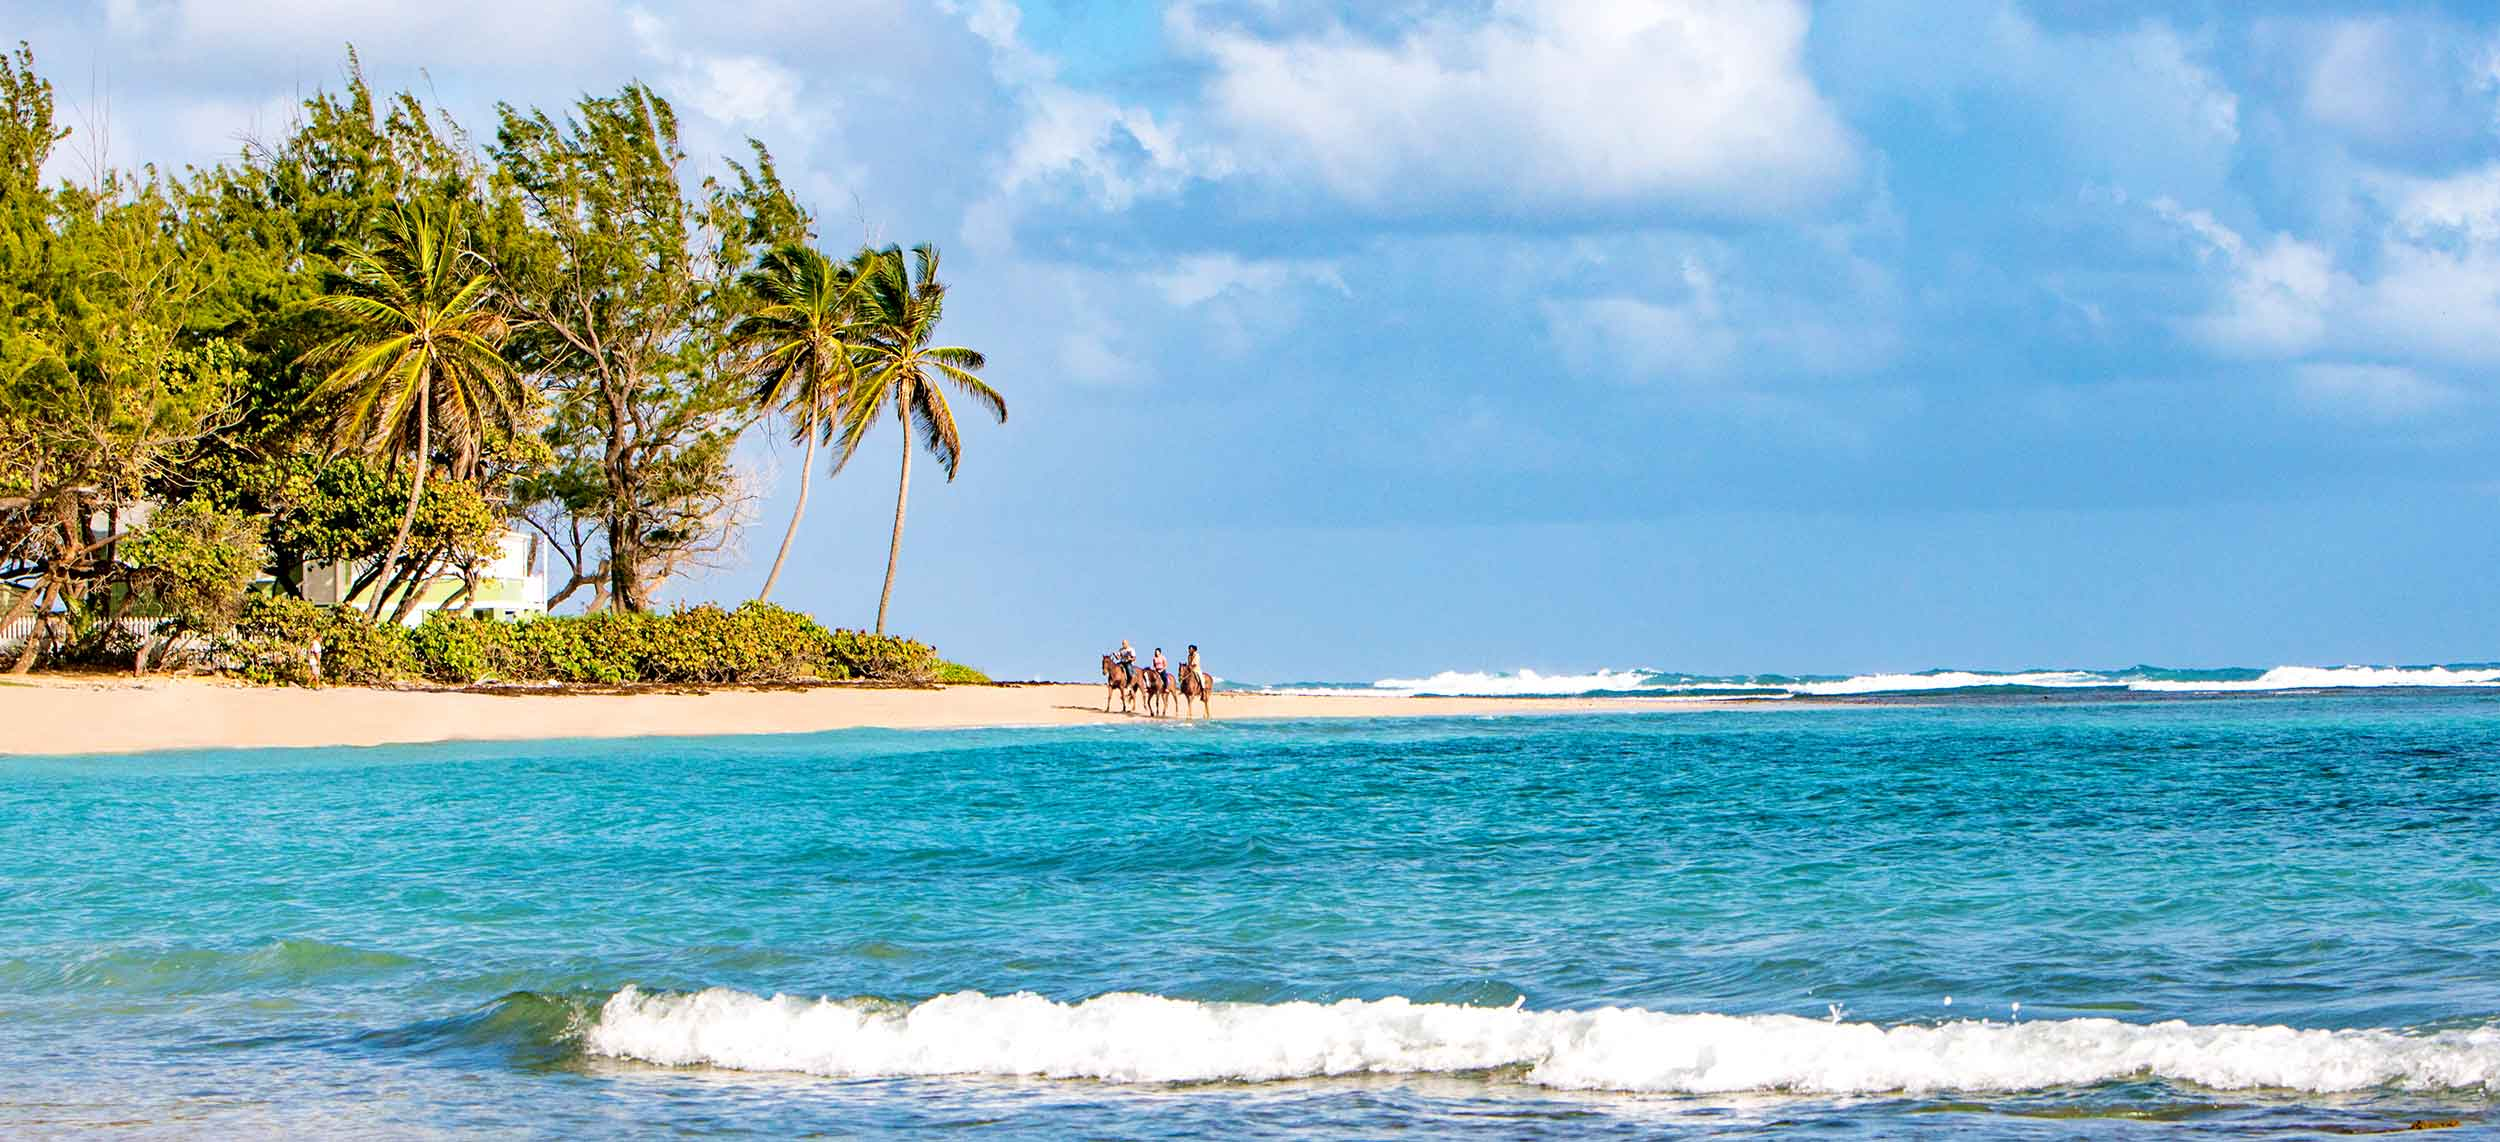 Discover Barbados with Copa Airlines